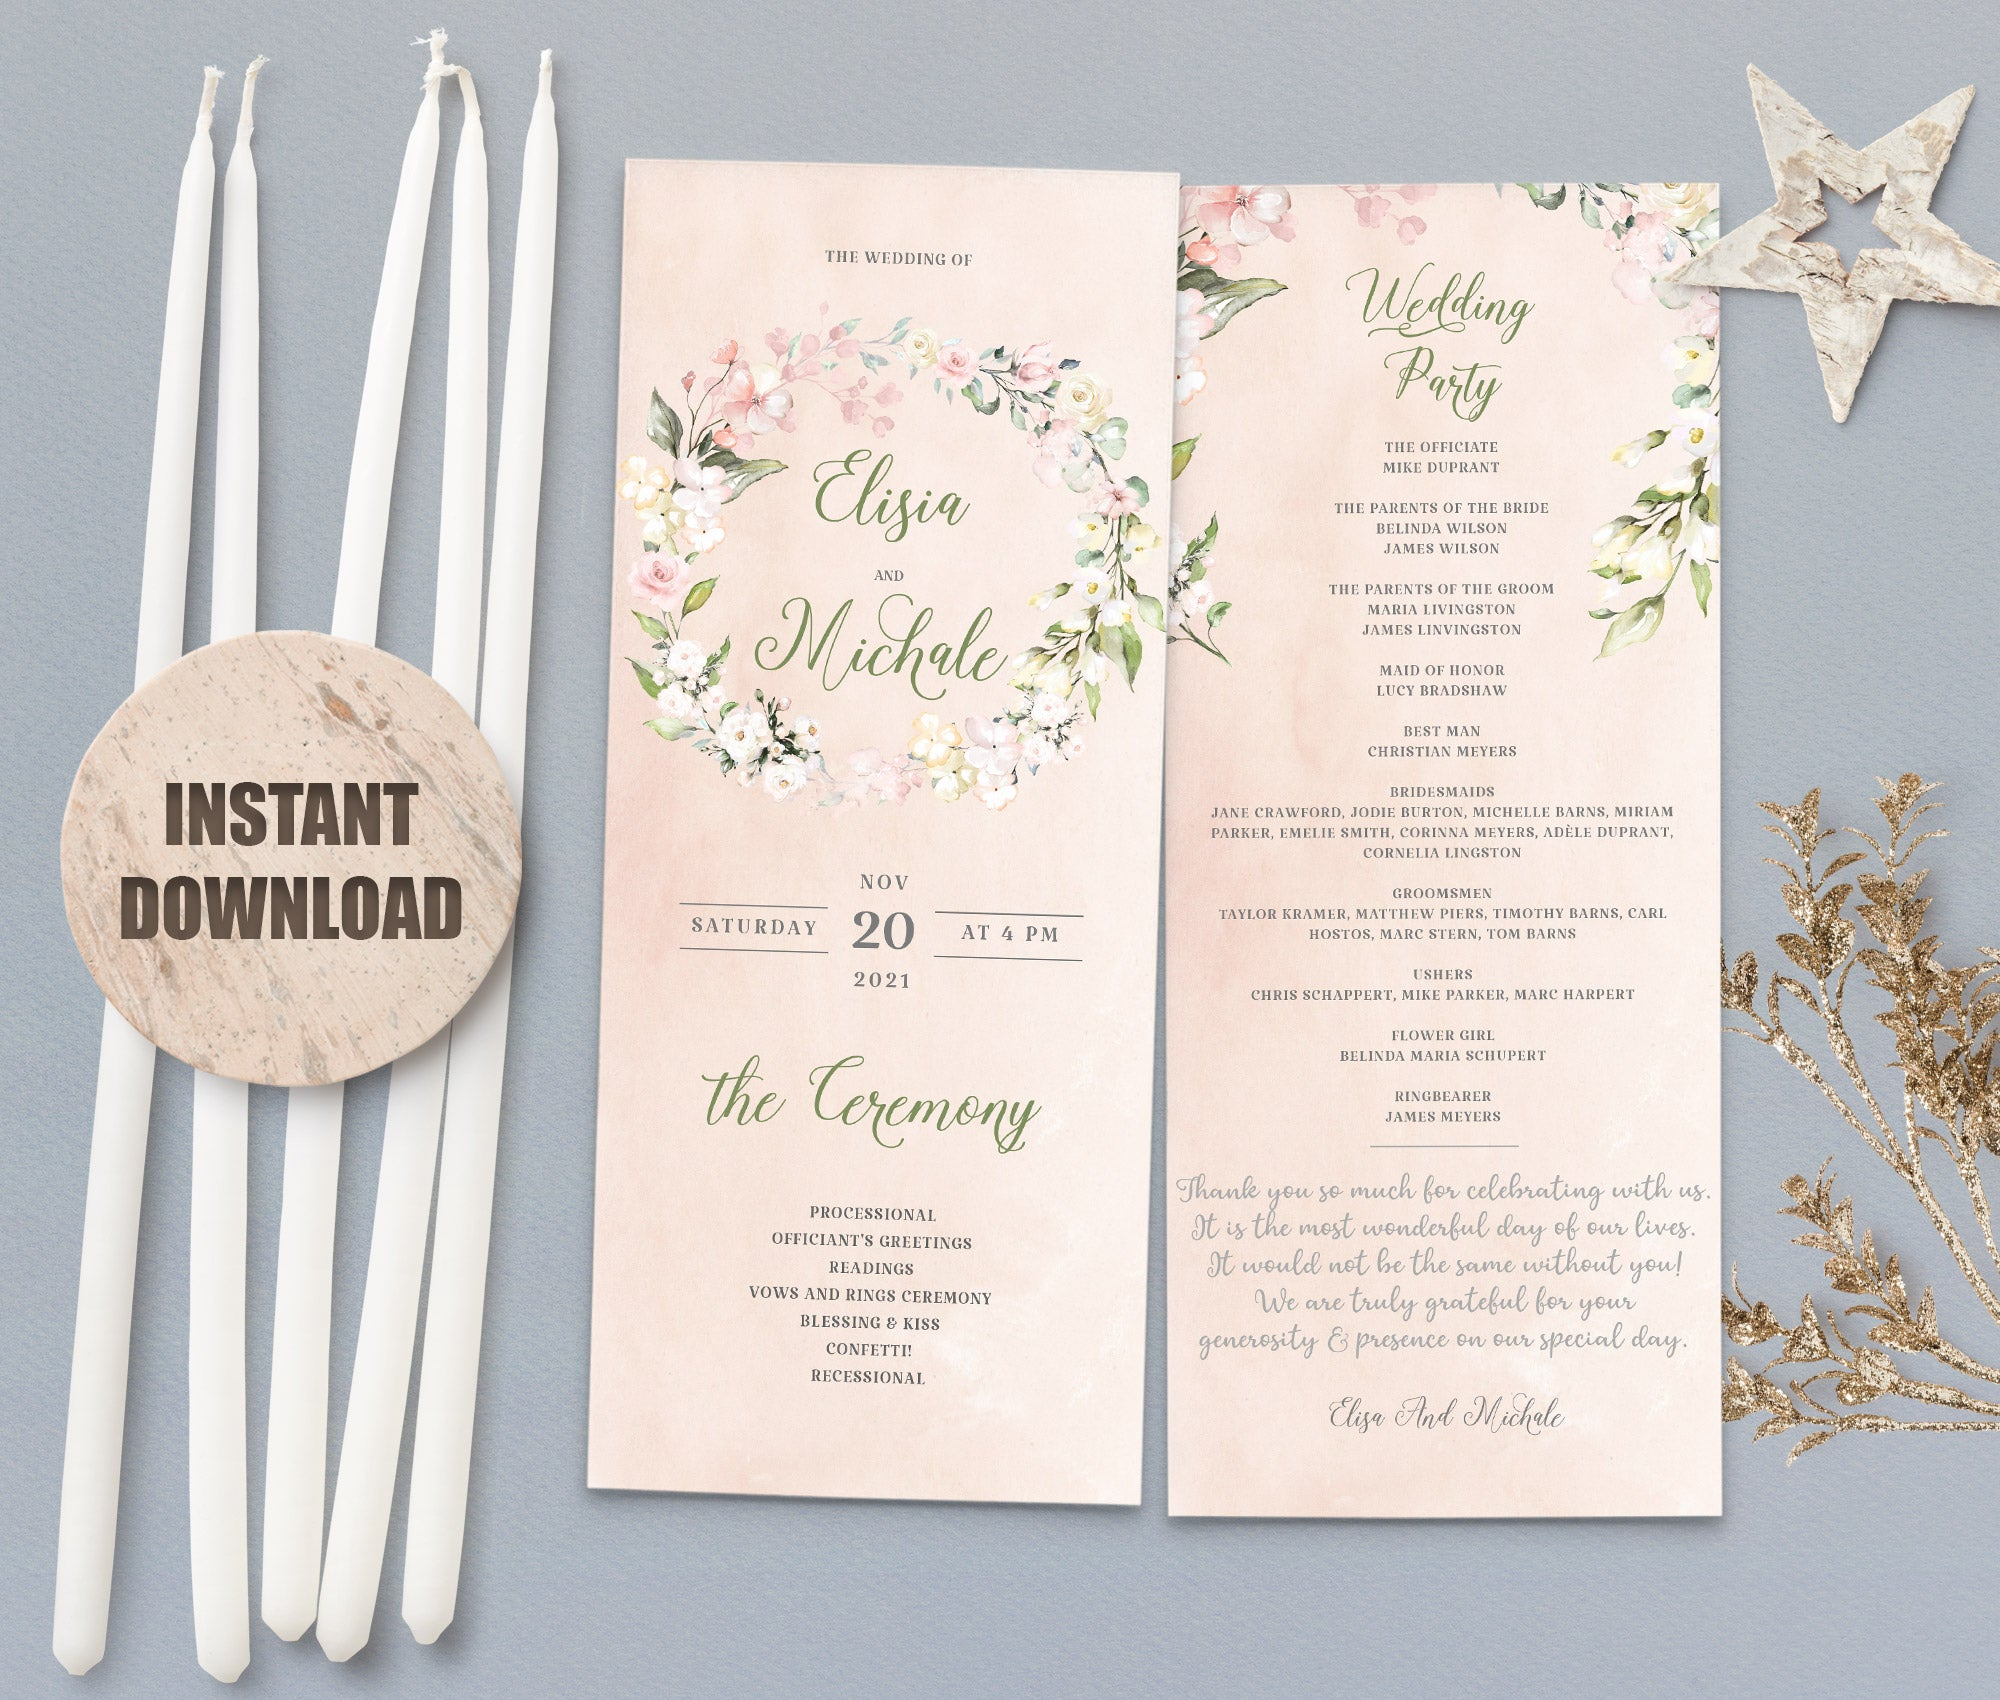 LOVAL Wedding Program set 5